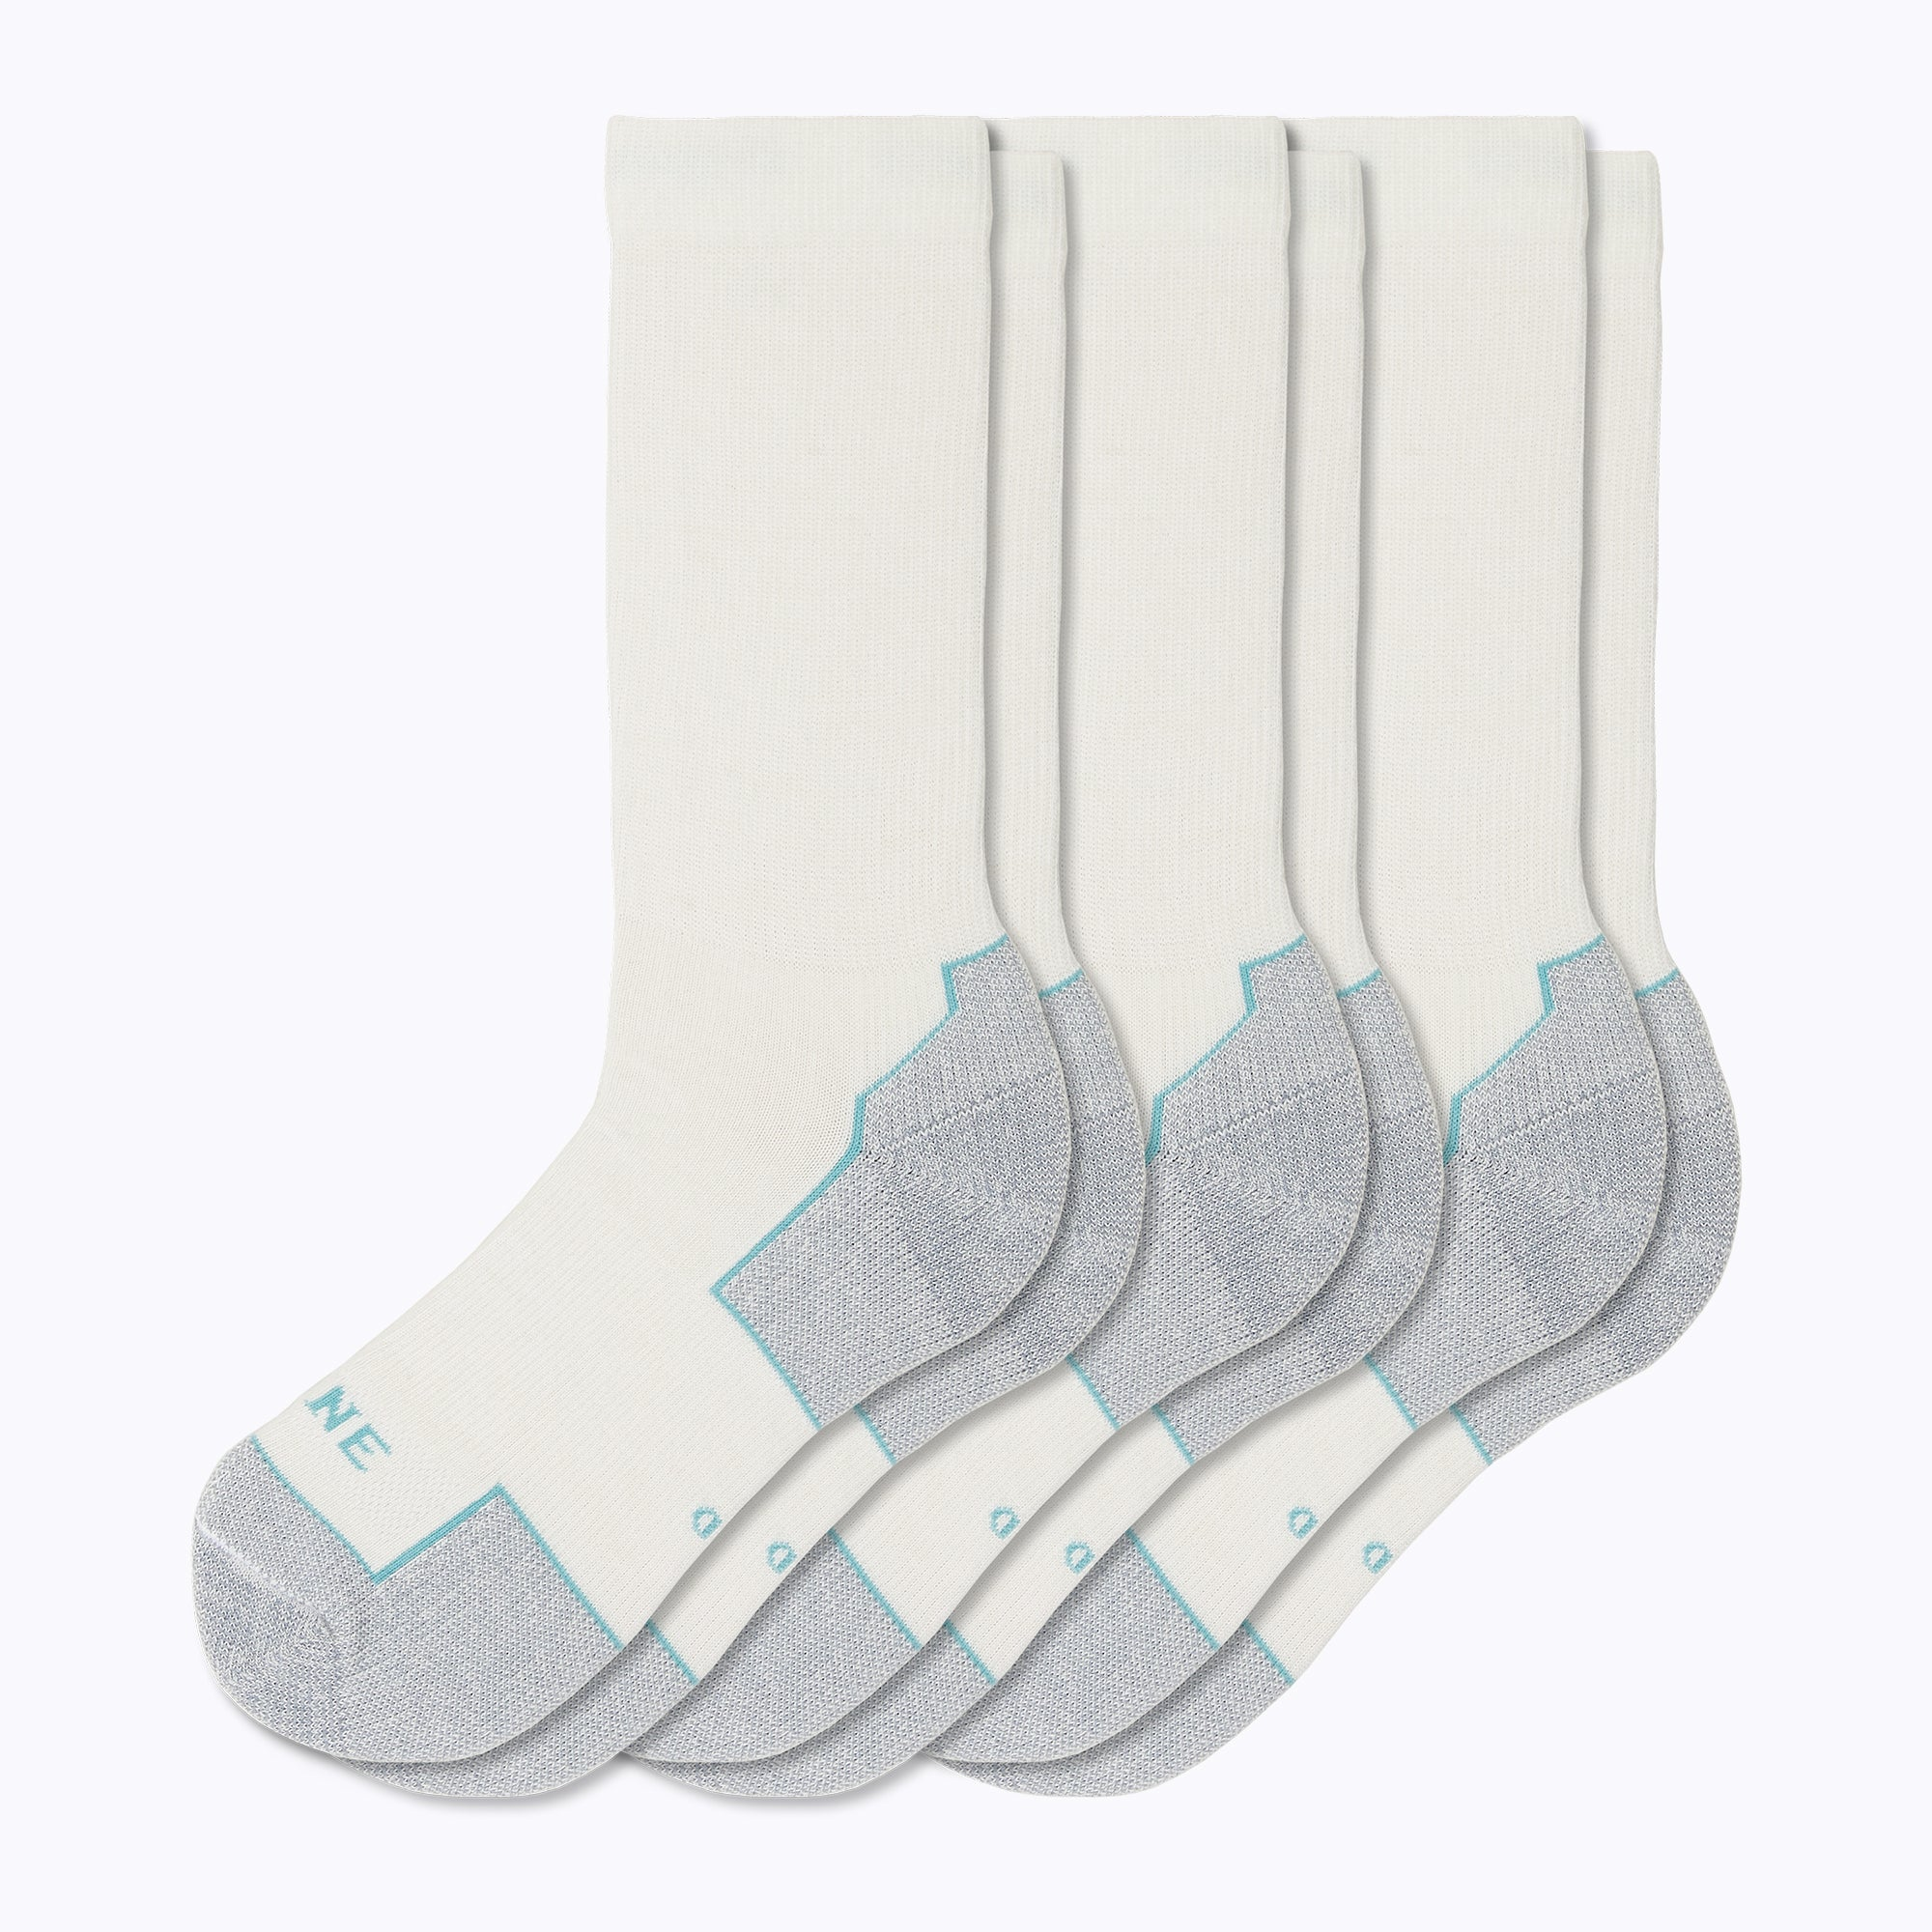 Everyday 3 Pack Women's Mid-Calf Socks - White by Canyon x Lane Socks